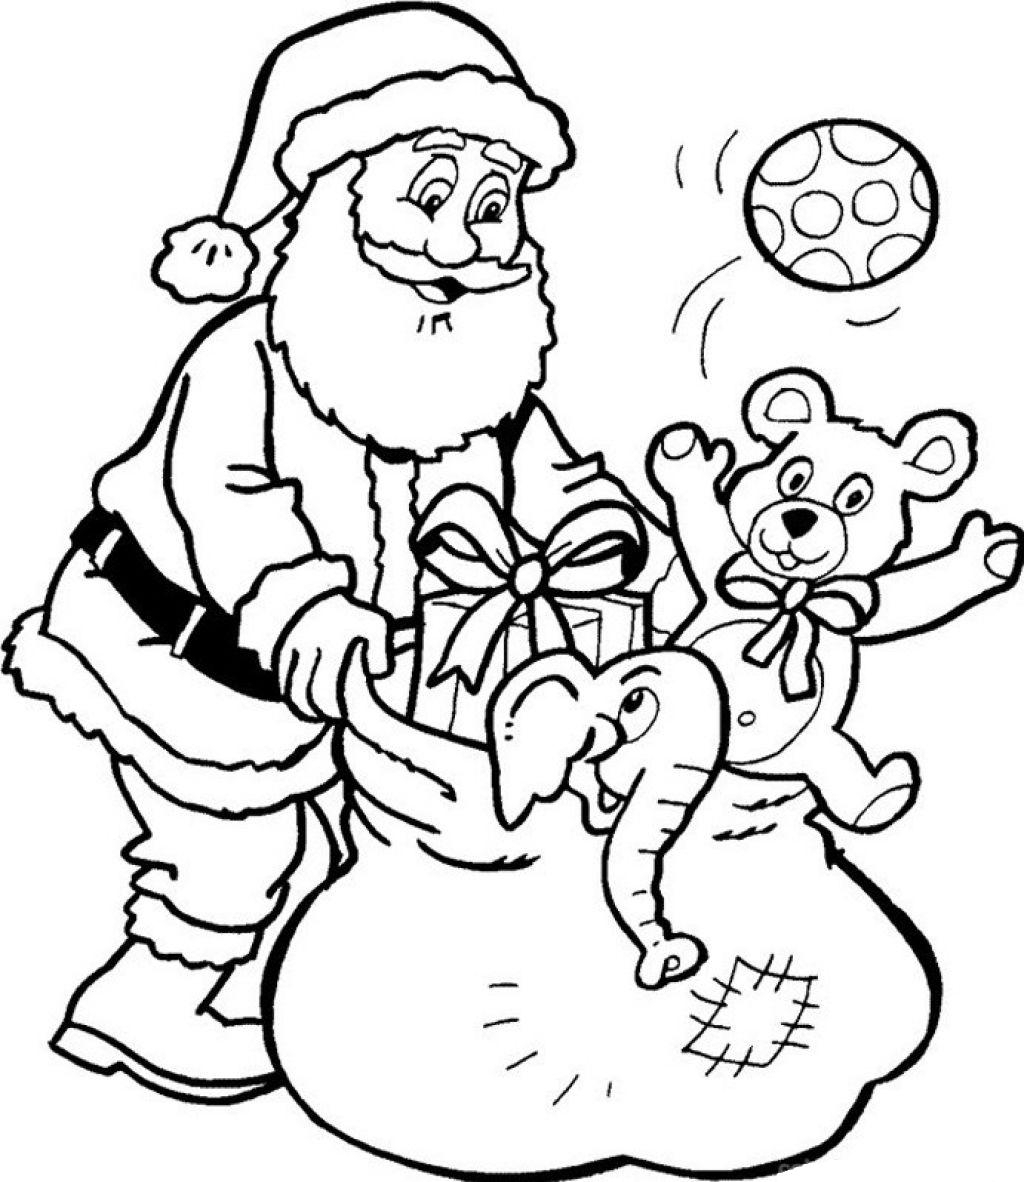 Santa Claus Cartoon Coloring Pages With Awesome Design Printable